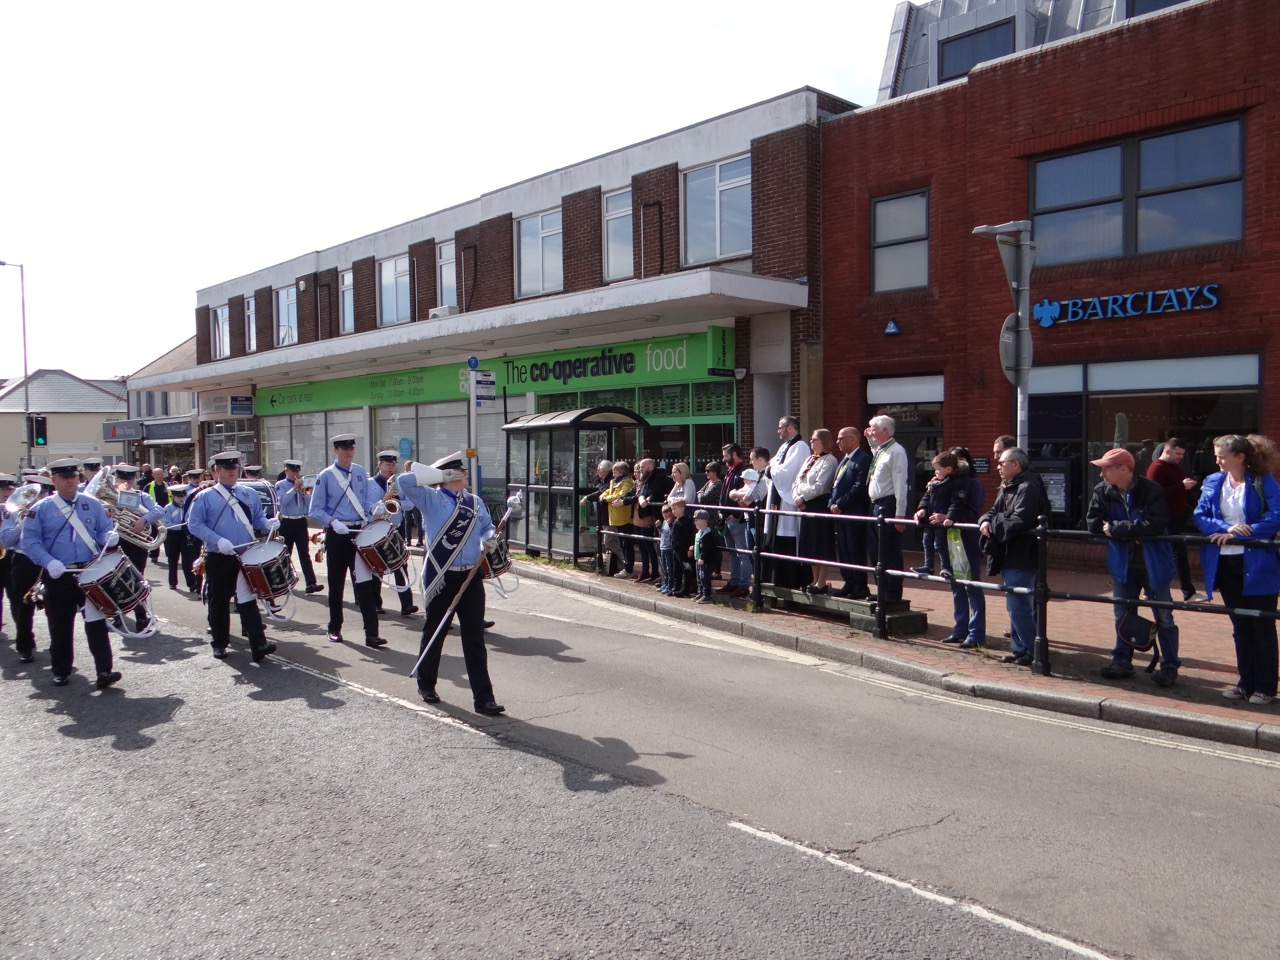 The 14th Eastleigh Spitfires Scout and Guide Band - Chandler's Ford Salute on St George's Day 2019. Image credit: Richard Doyle